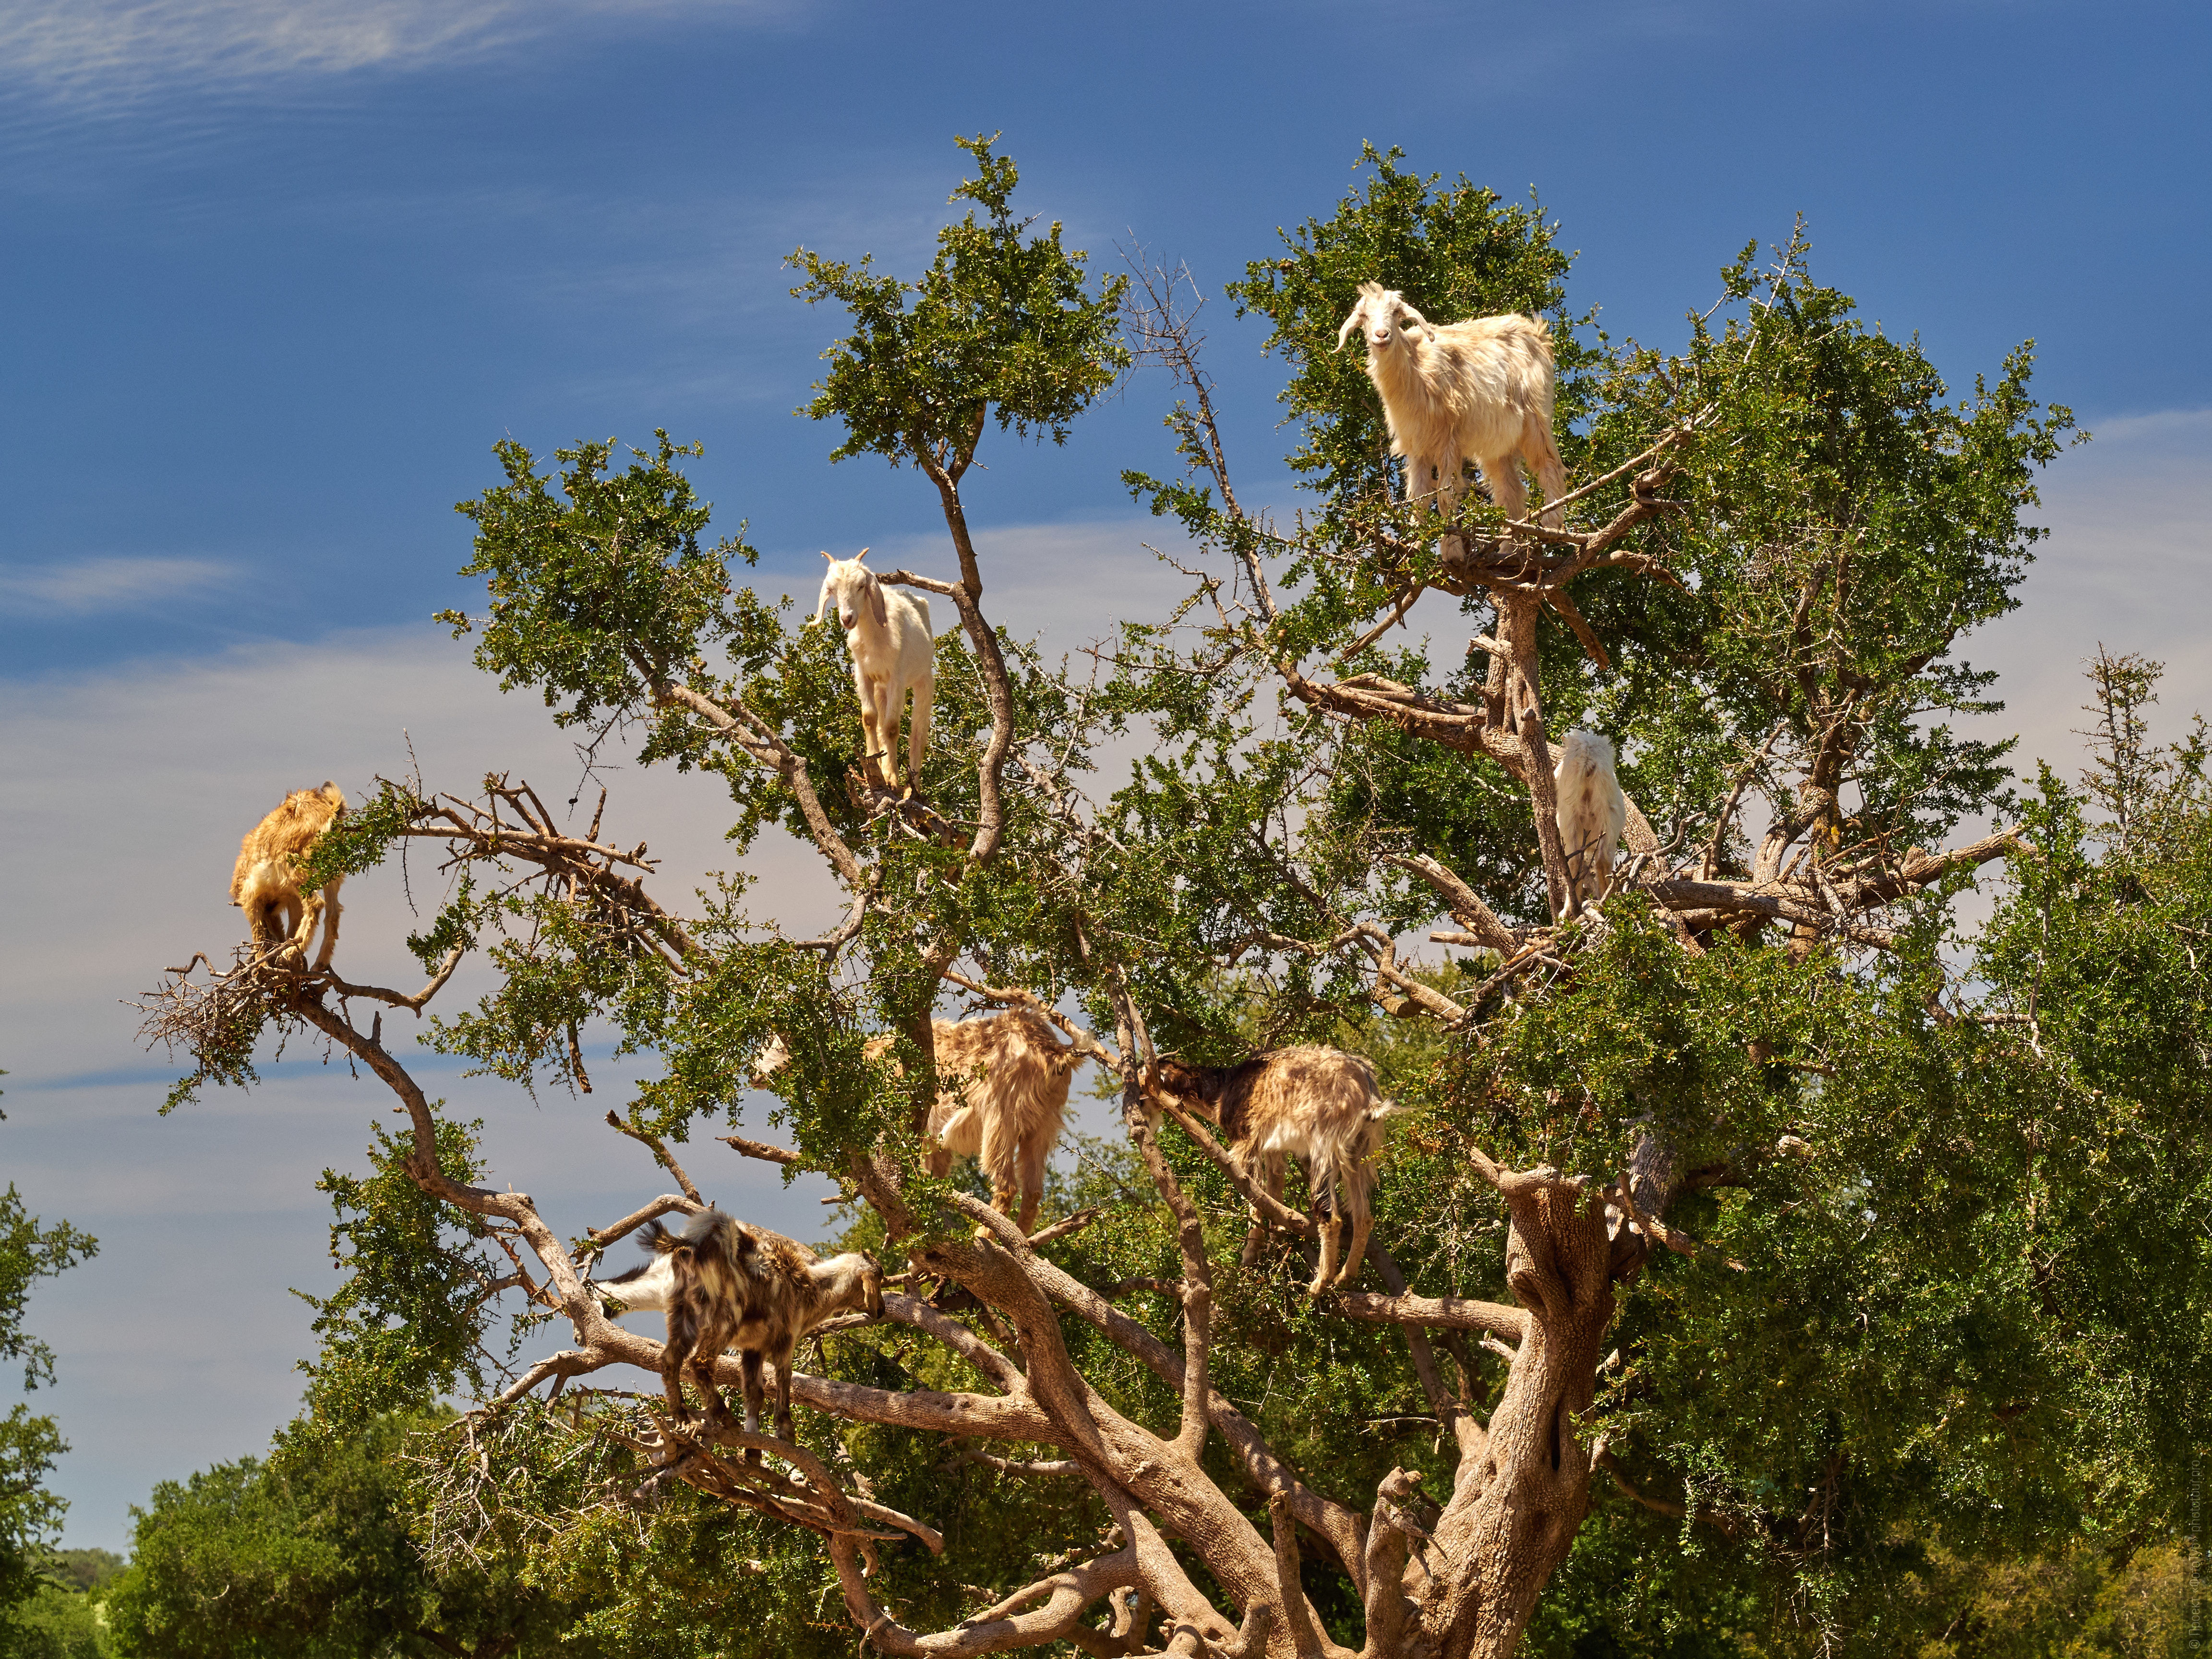 Goats on trees in morocco. Adventure photo tour: medina, cascades, sands and ports of Morocco, April 4 - 17, 2020.